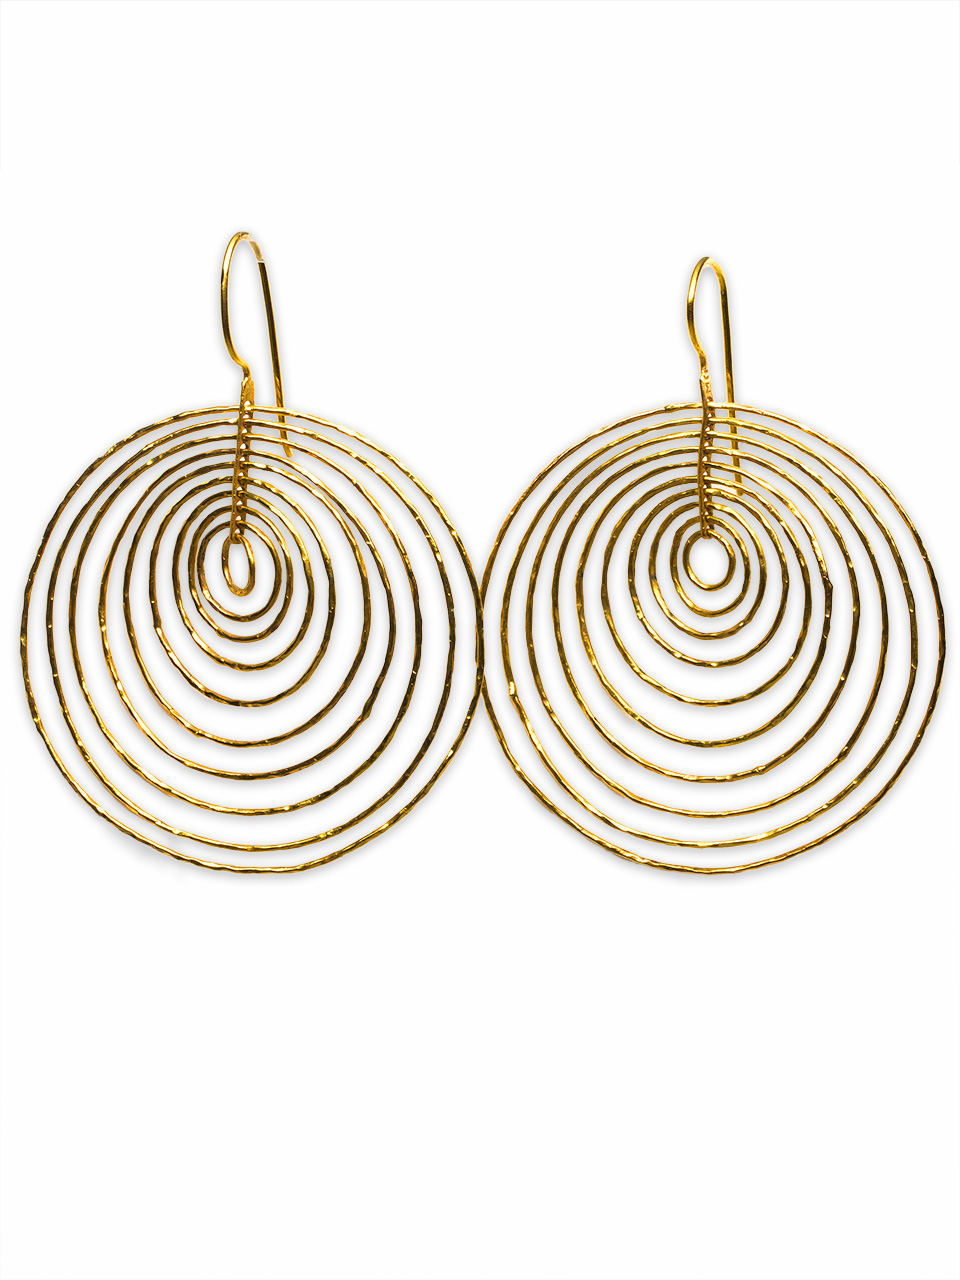 18K YG Hammered Hoops